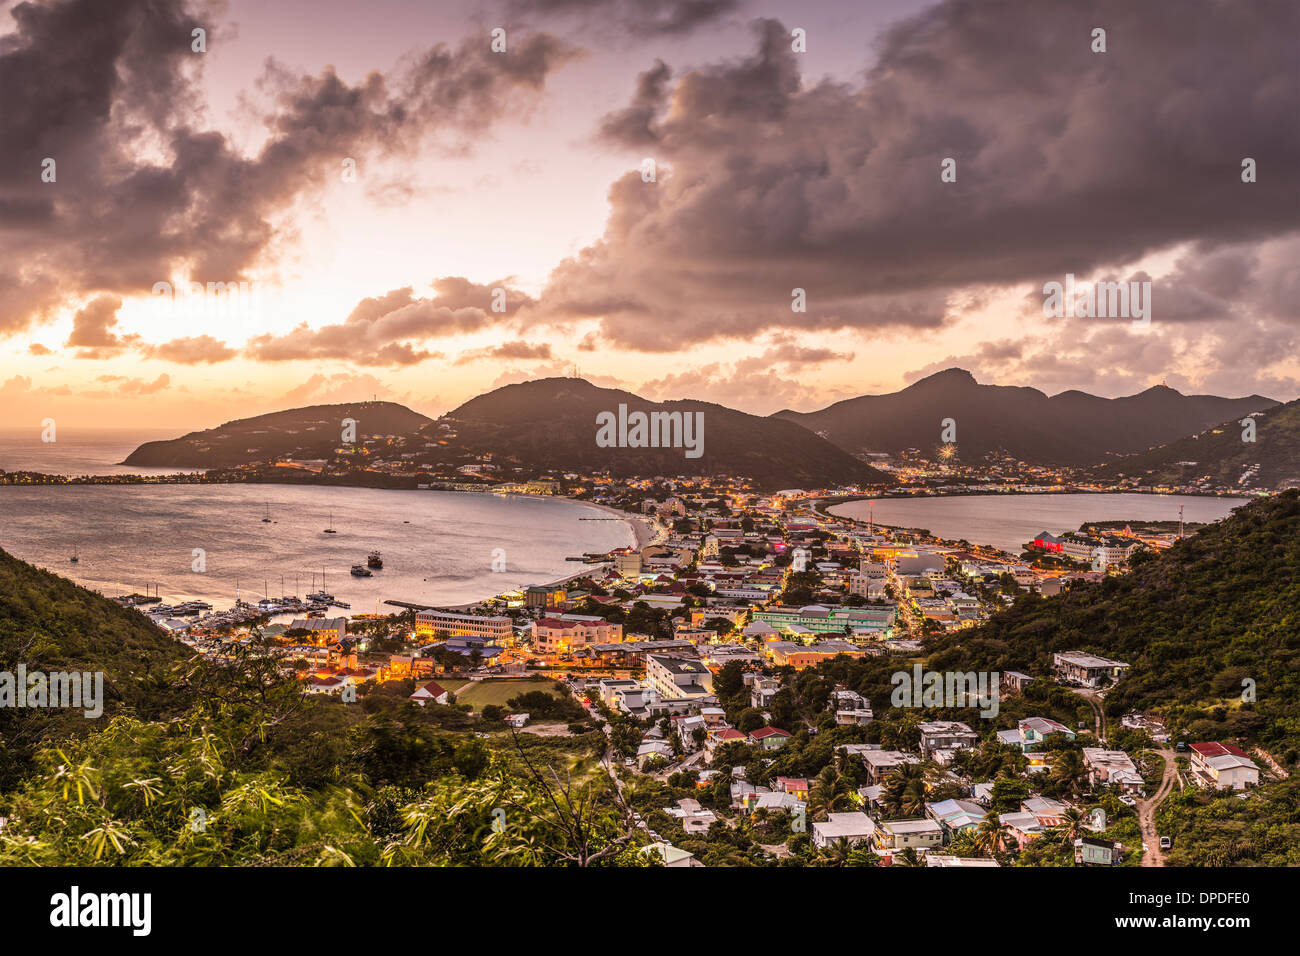 Philipsburg, Sint Maarten in the Caribbean. - Stock Image